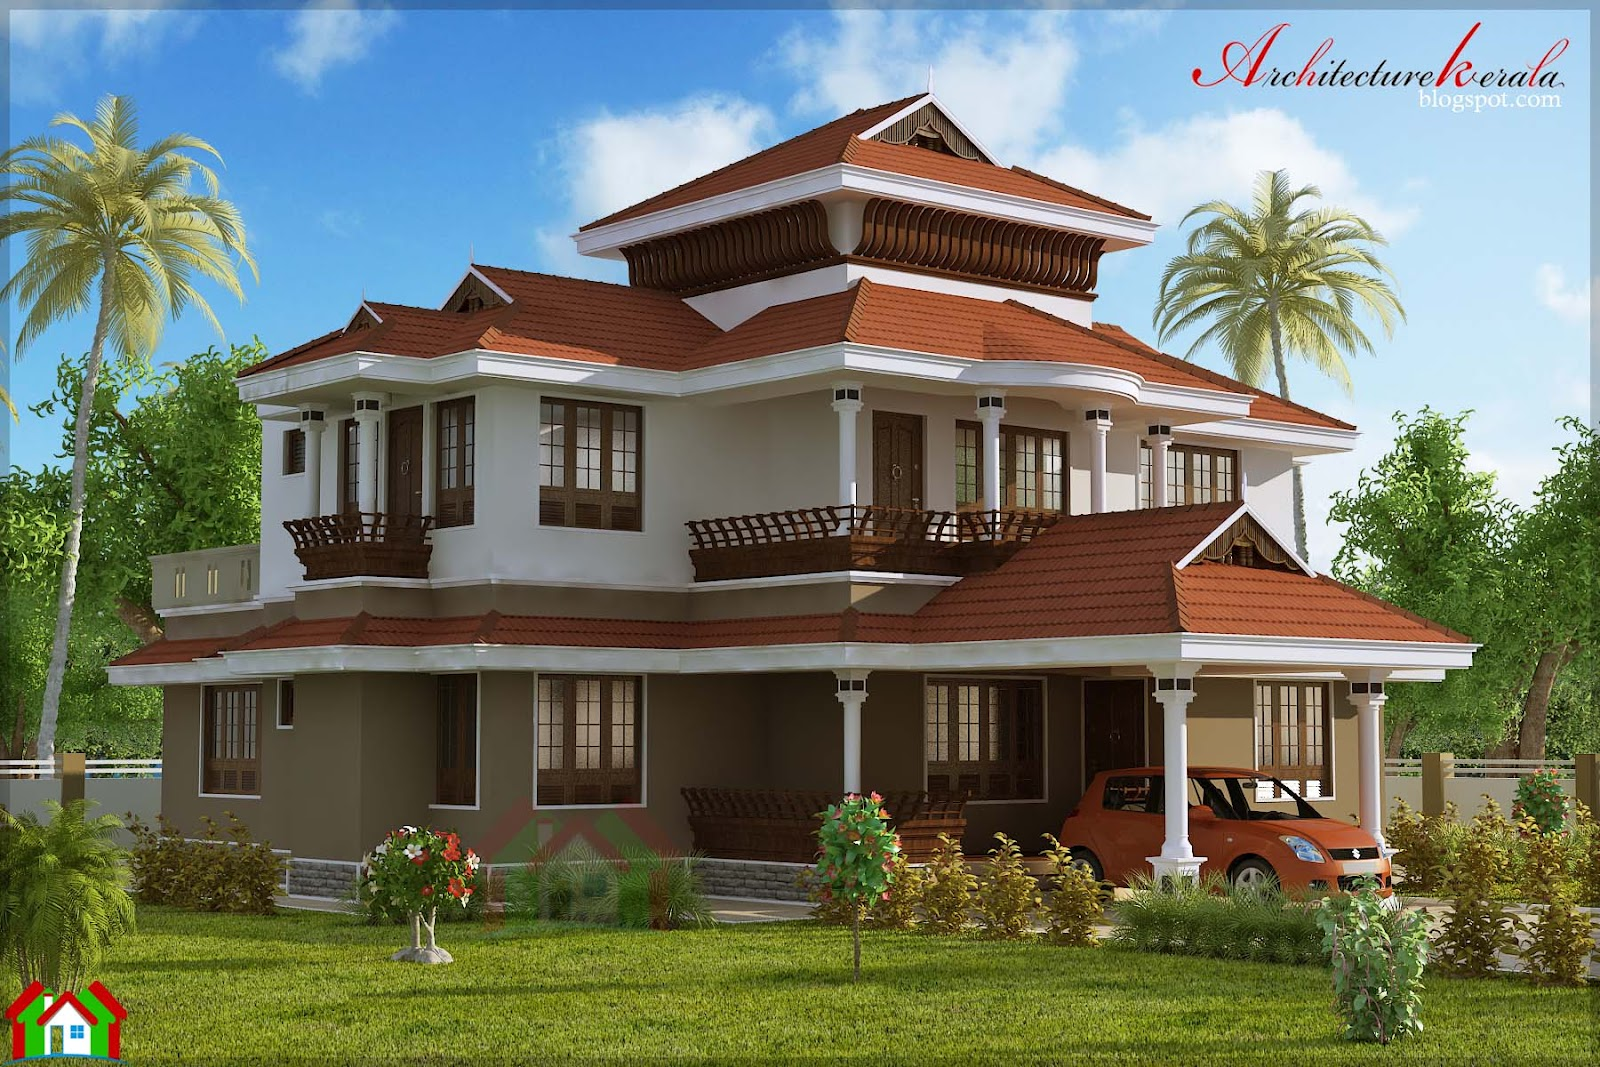 4 bed room traditional style house architecture kerala On conventional style home